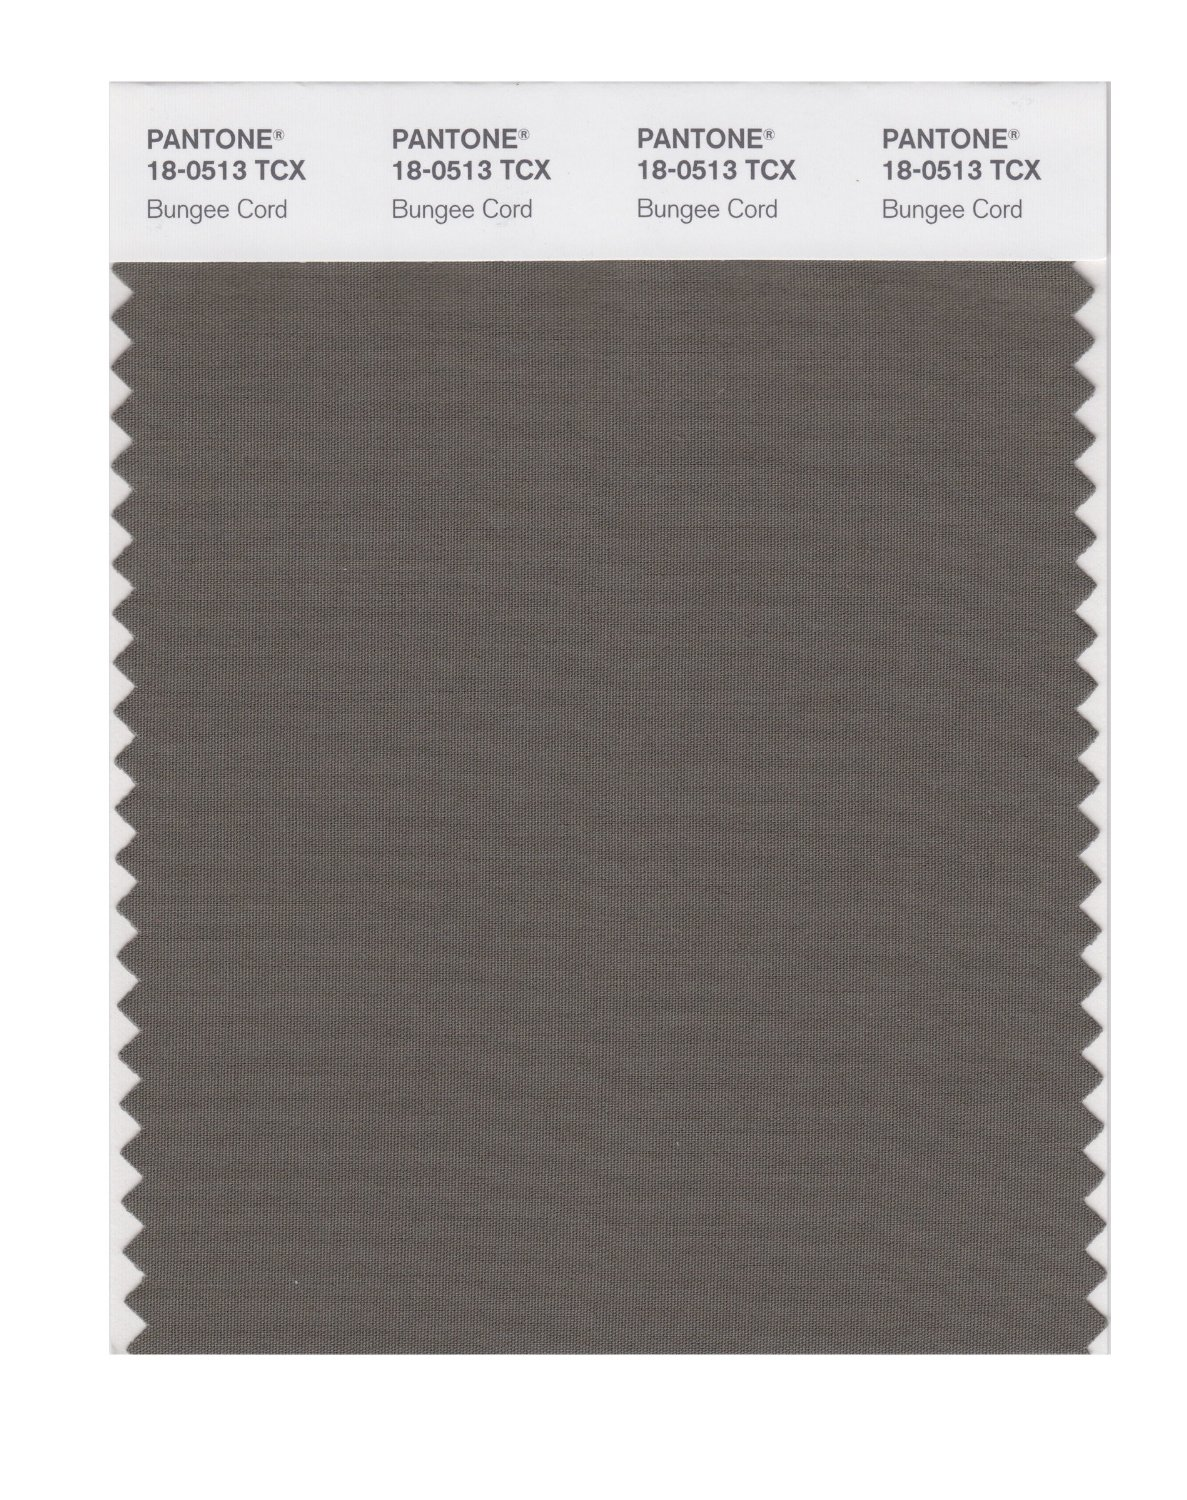 Pantone Smart Swatch 18-0513 Bungee Cord